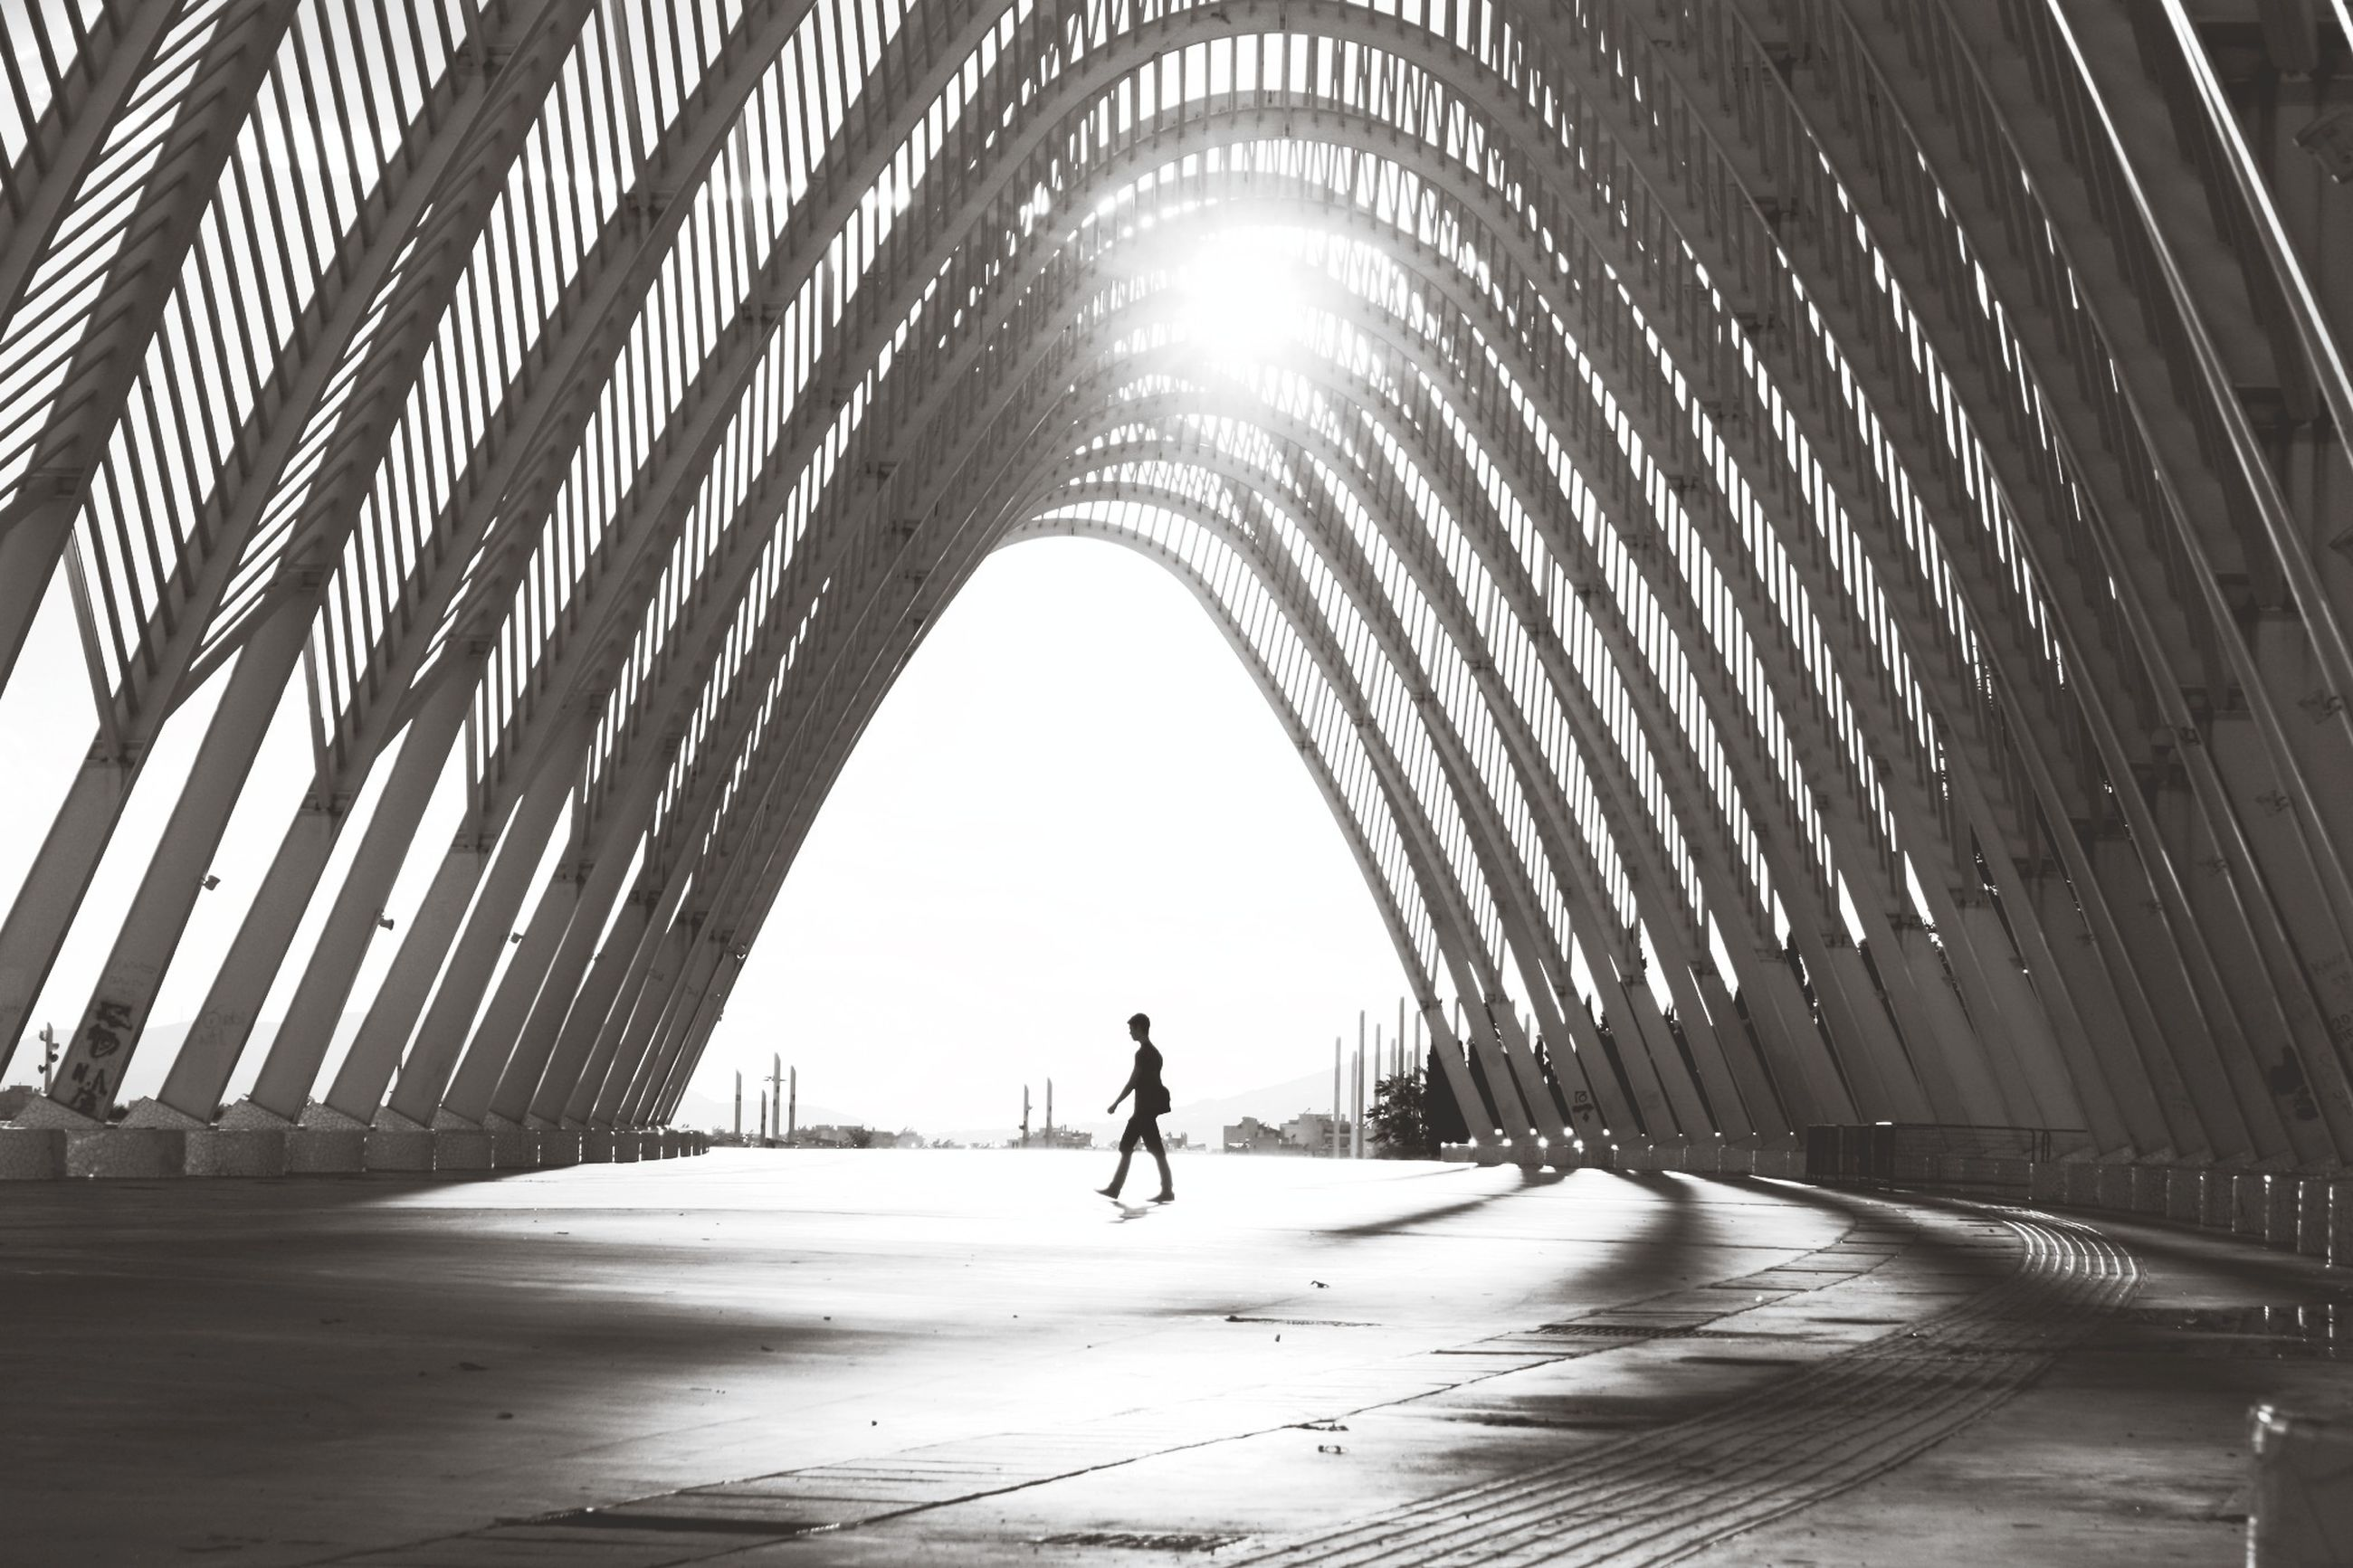 the way forward, diminishing perspective, built structure, arch, walking, architecture, incidental people, tunnel, vanishing point, connection, road, sunlight, clear sky, low angle view, reflection, unrecognizable person, street, silhouette